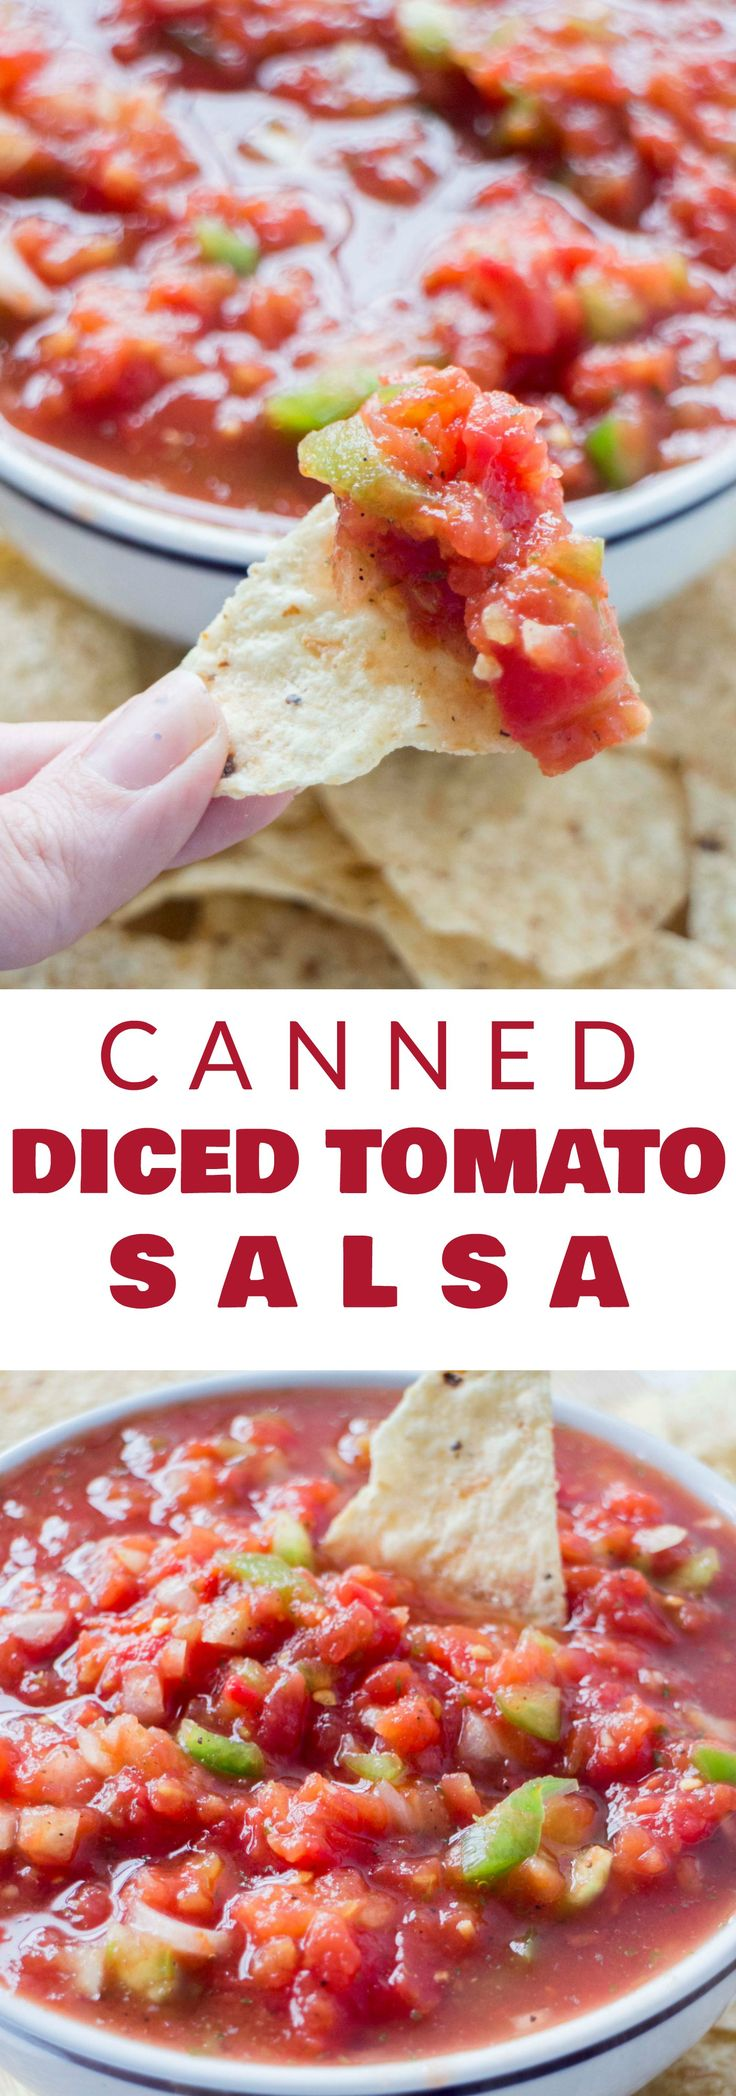 FAST and EASY Salsa made with Canned Diced Tomatoes! Just add green peppers and onions to this simple recipe and you'll have a delicious chunky salsa ready to serve in minutes!  This tastes just like the salsa at your favorite Mexican restaurant!